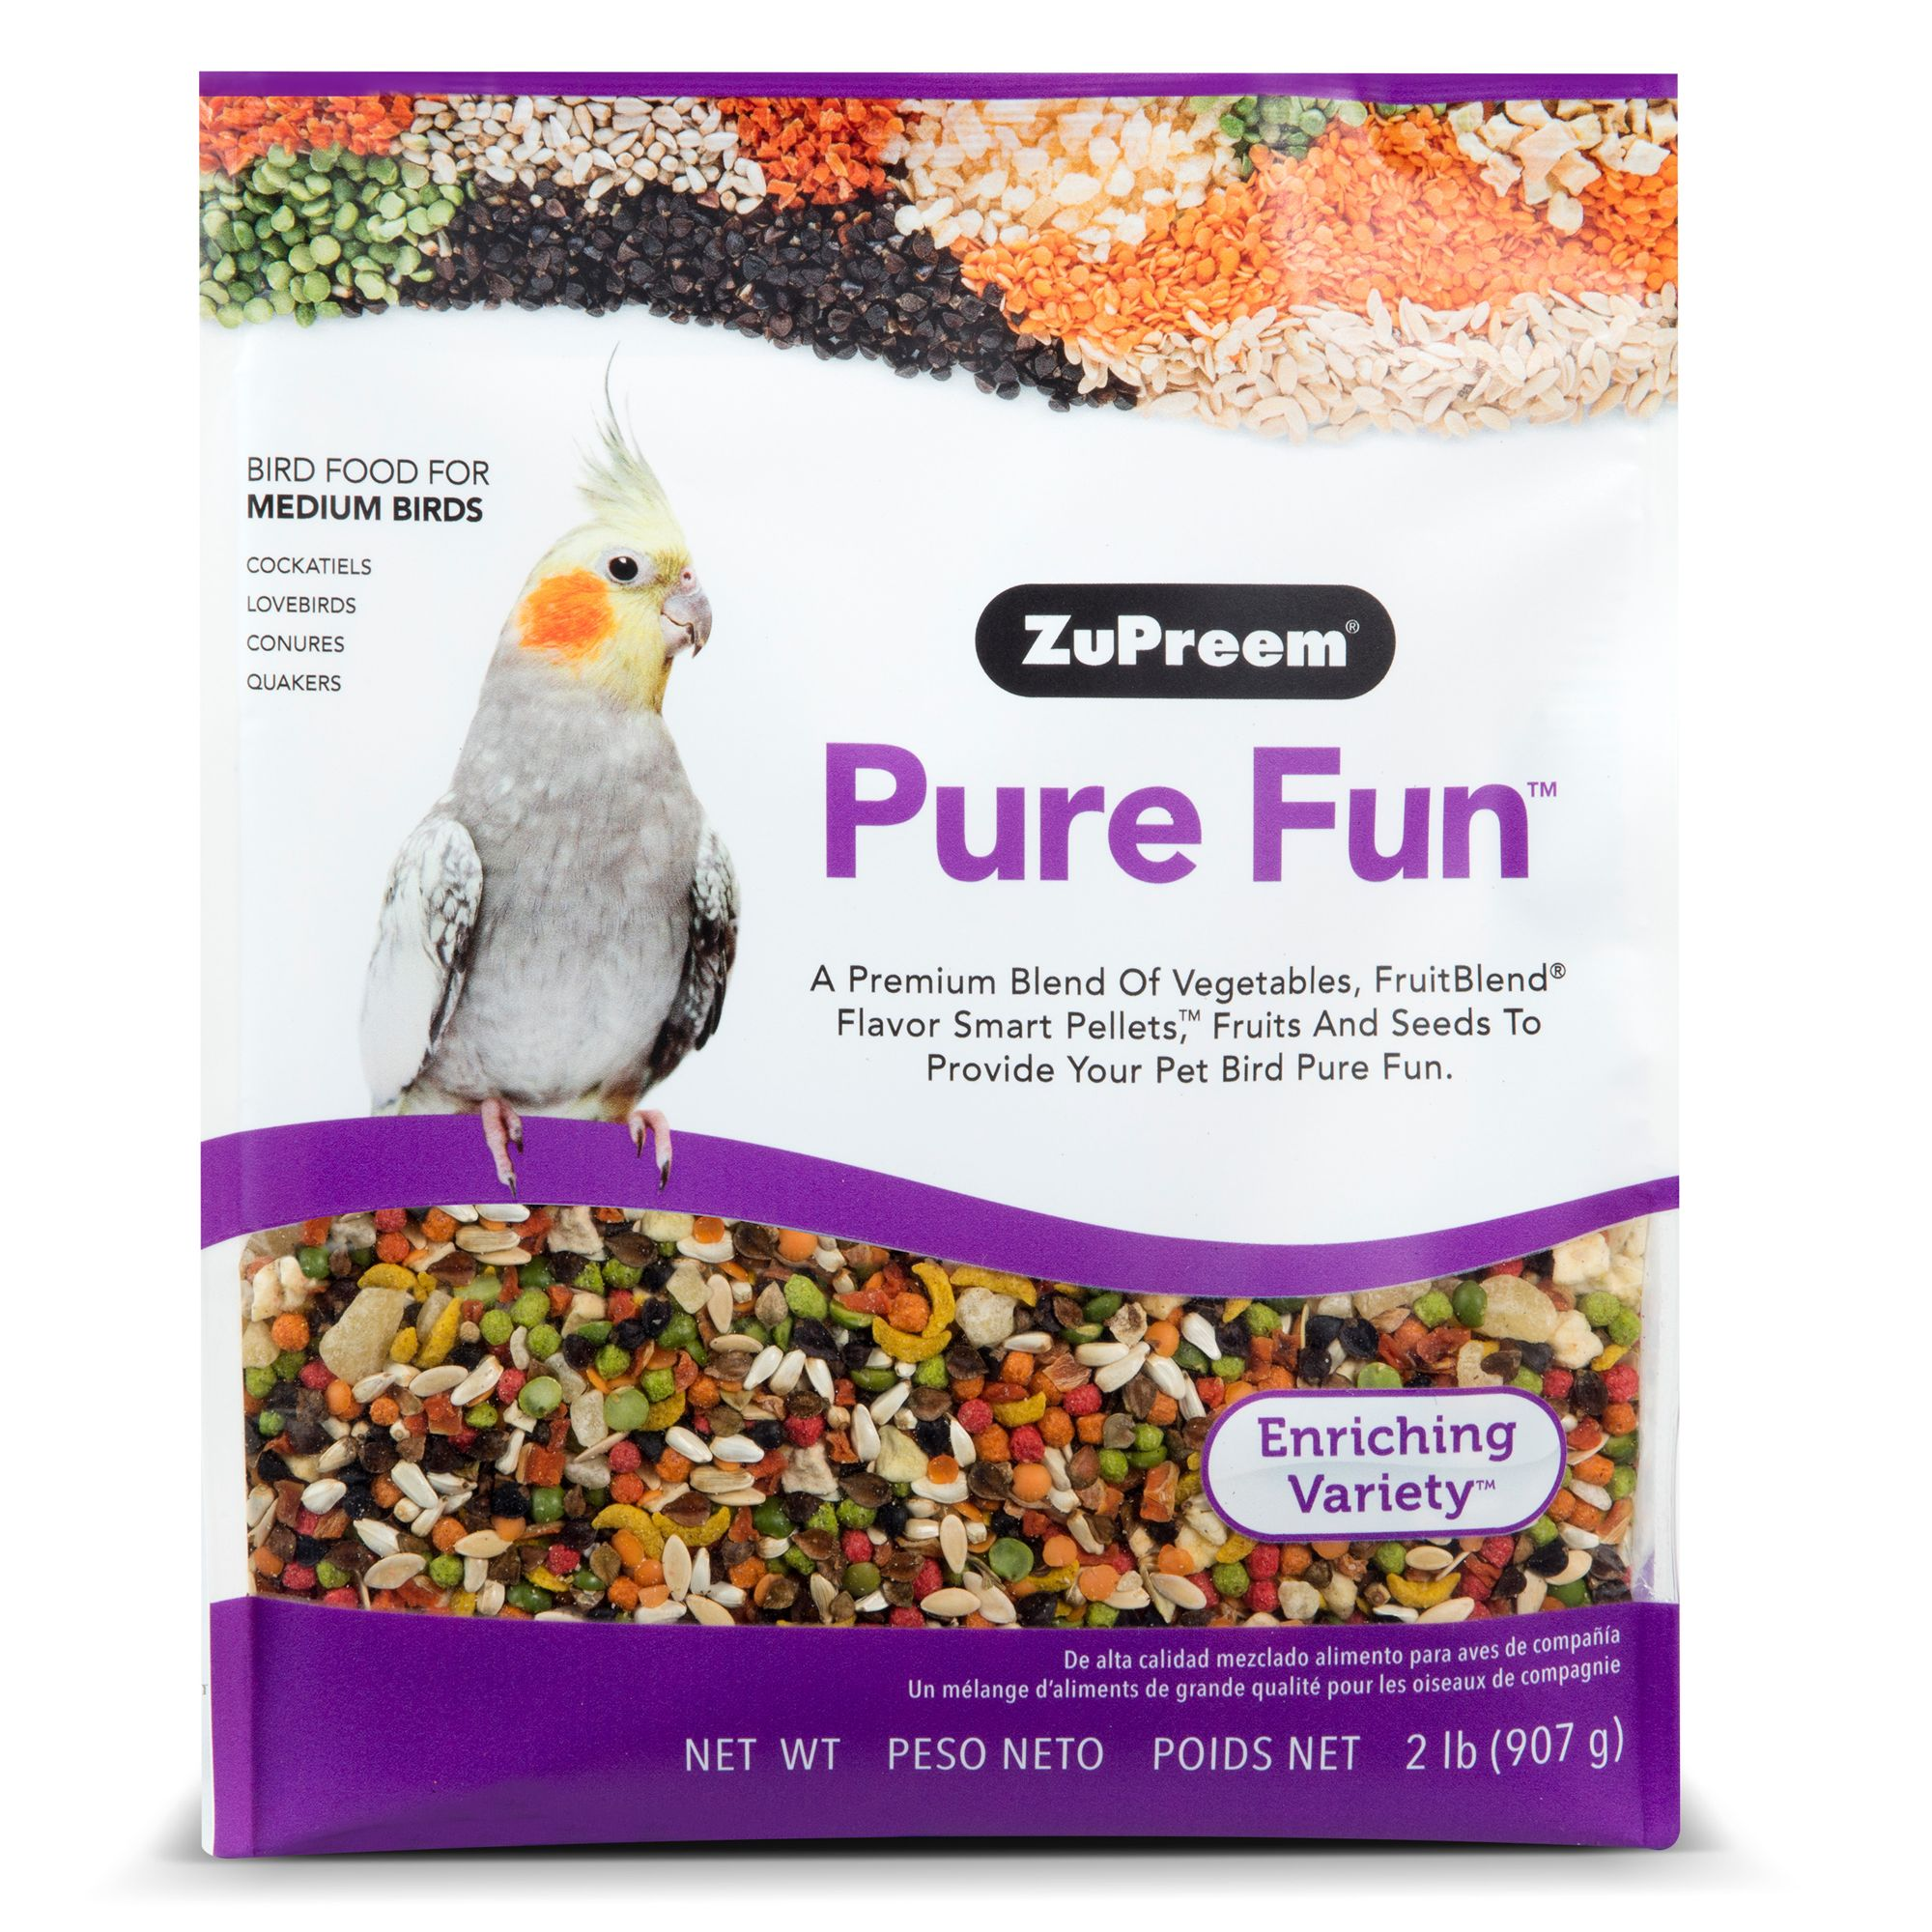 ZuPreem Pure Fun Enriching Variety Mix Medium Bird Food size: 2 Lb, Dry pellets, fruits, vegetables, seeds, Adult, Grains 5261587